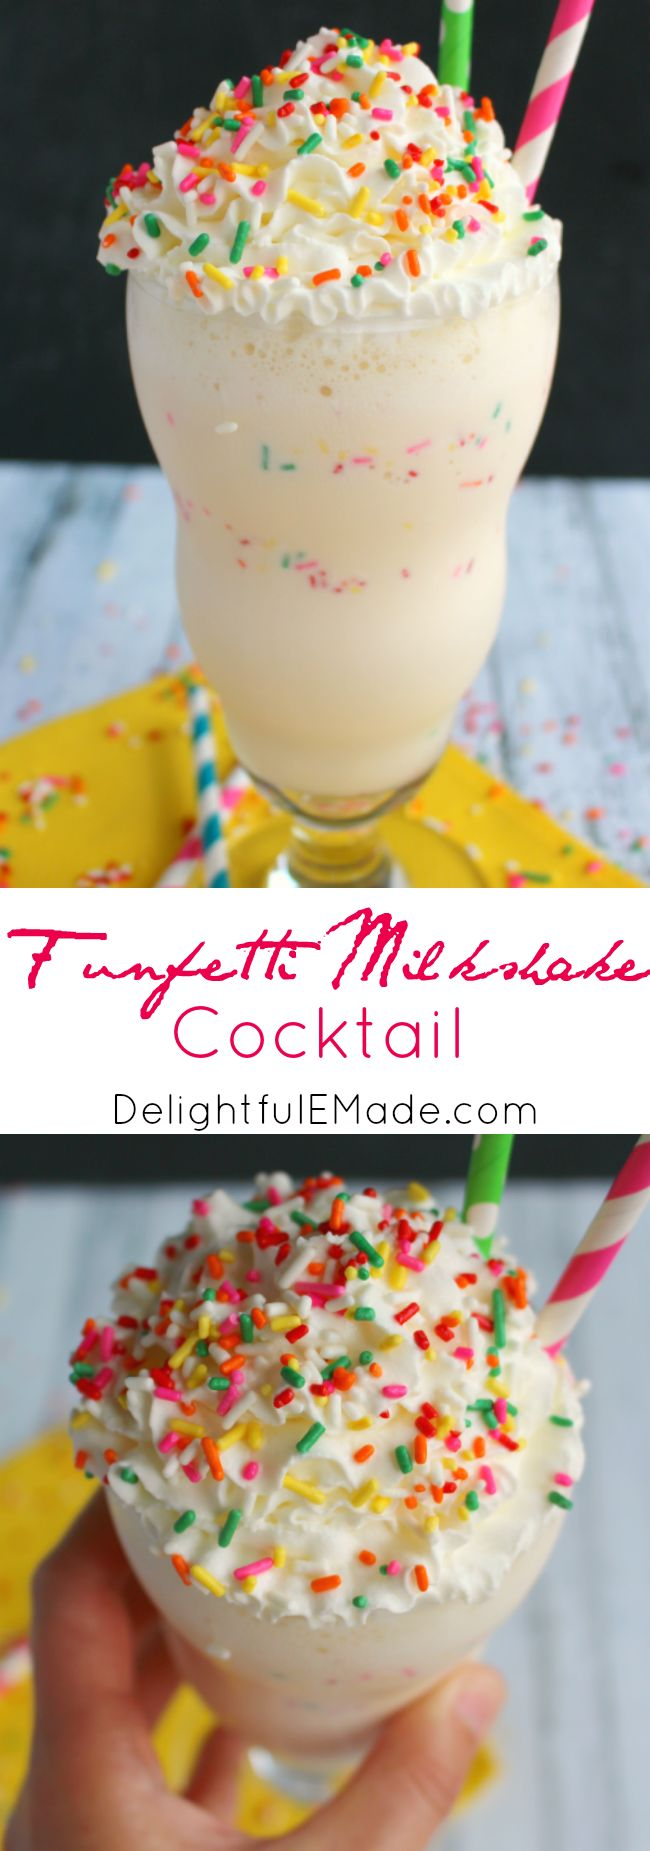 Want to celebrate with a fun, delicious drink?  Made with creamy, delicious vanilla ice cream, lots of sprinkles and a few other goodies, this can be a cocktail or dessert that everyone will love!